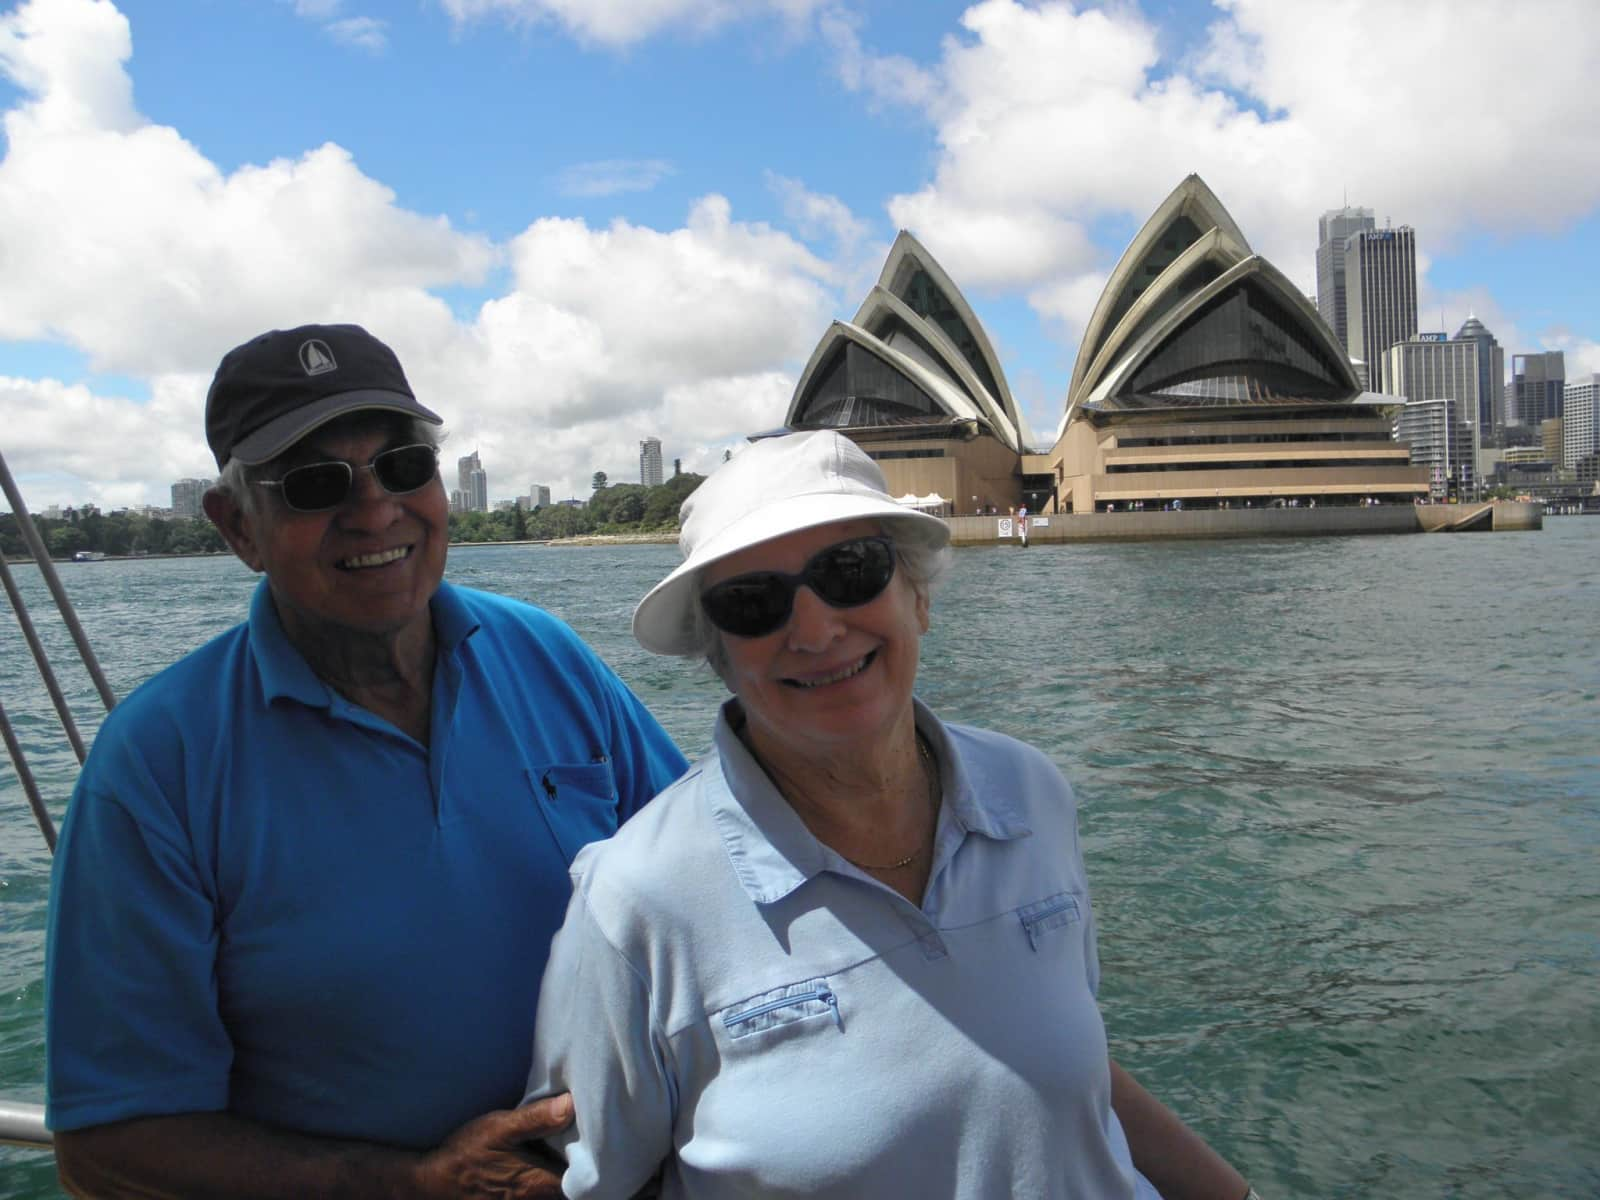 Helen & Ron from Toowoomba, Queensland, Australia